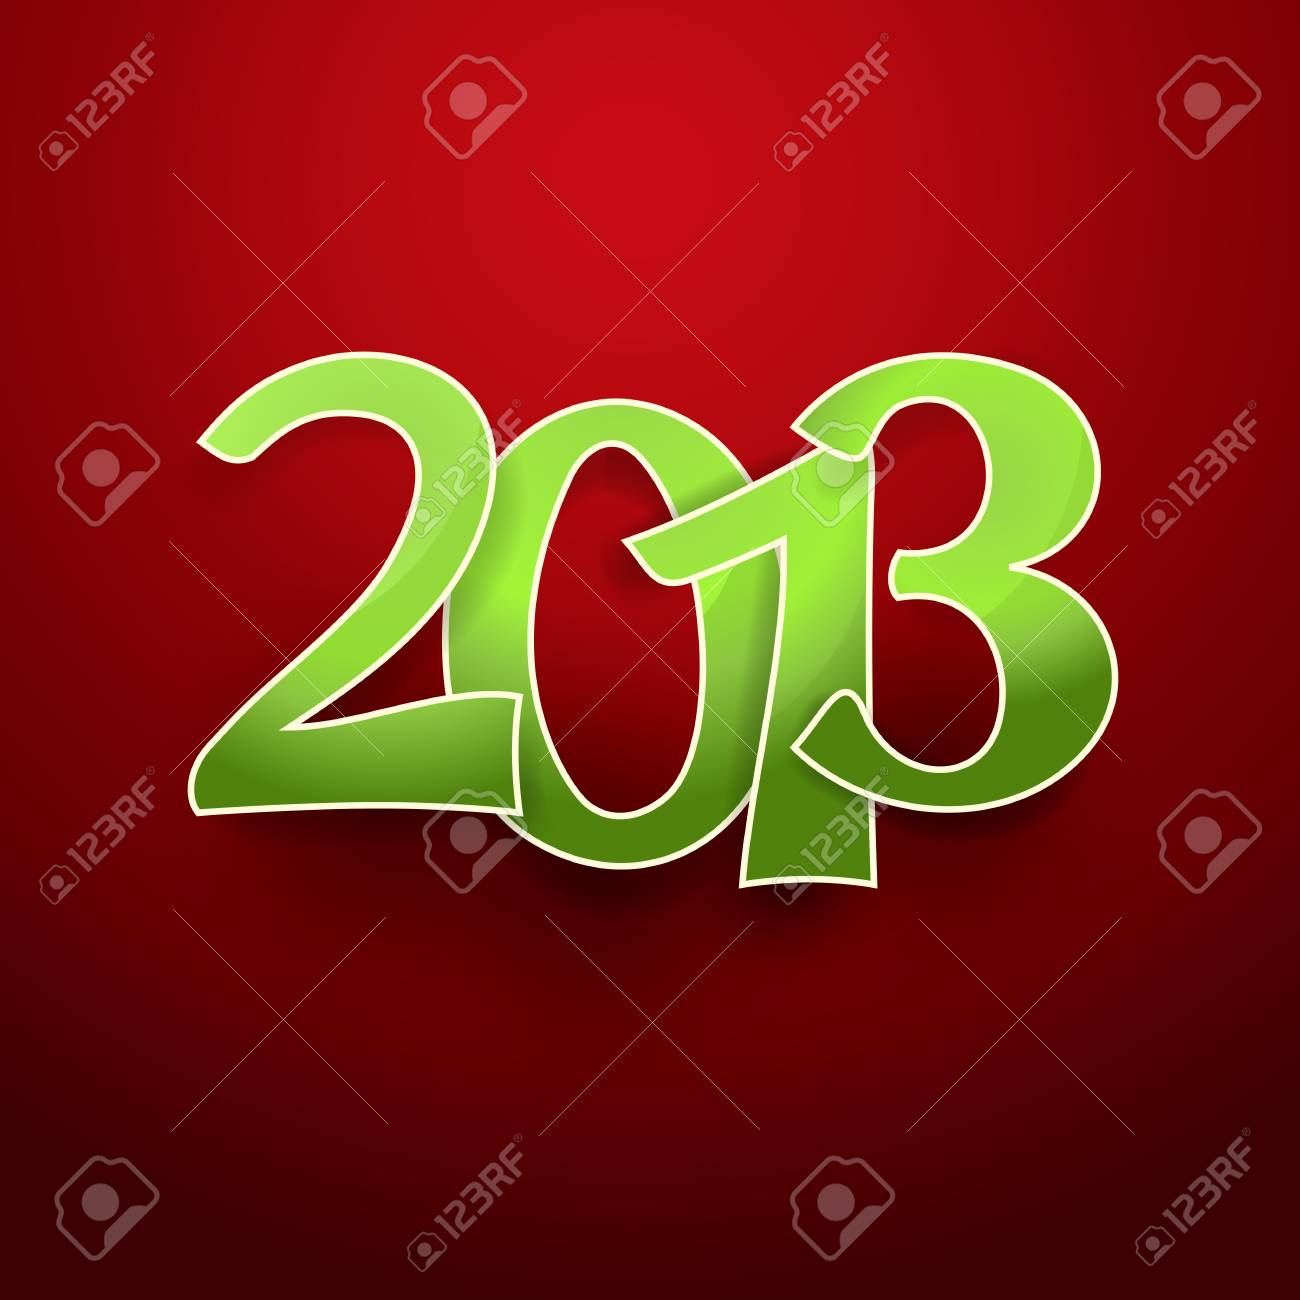 green 2013 on red new year background Stock Photo - 16901253